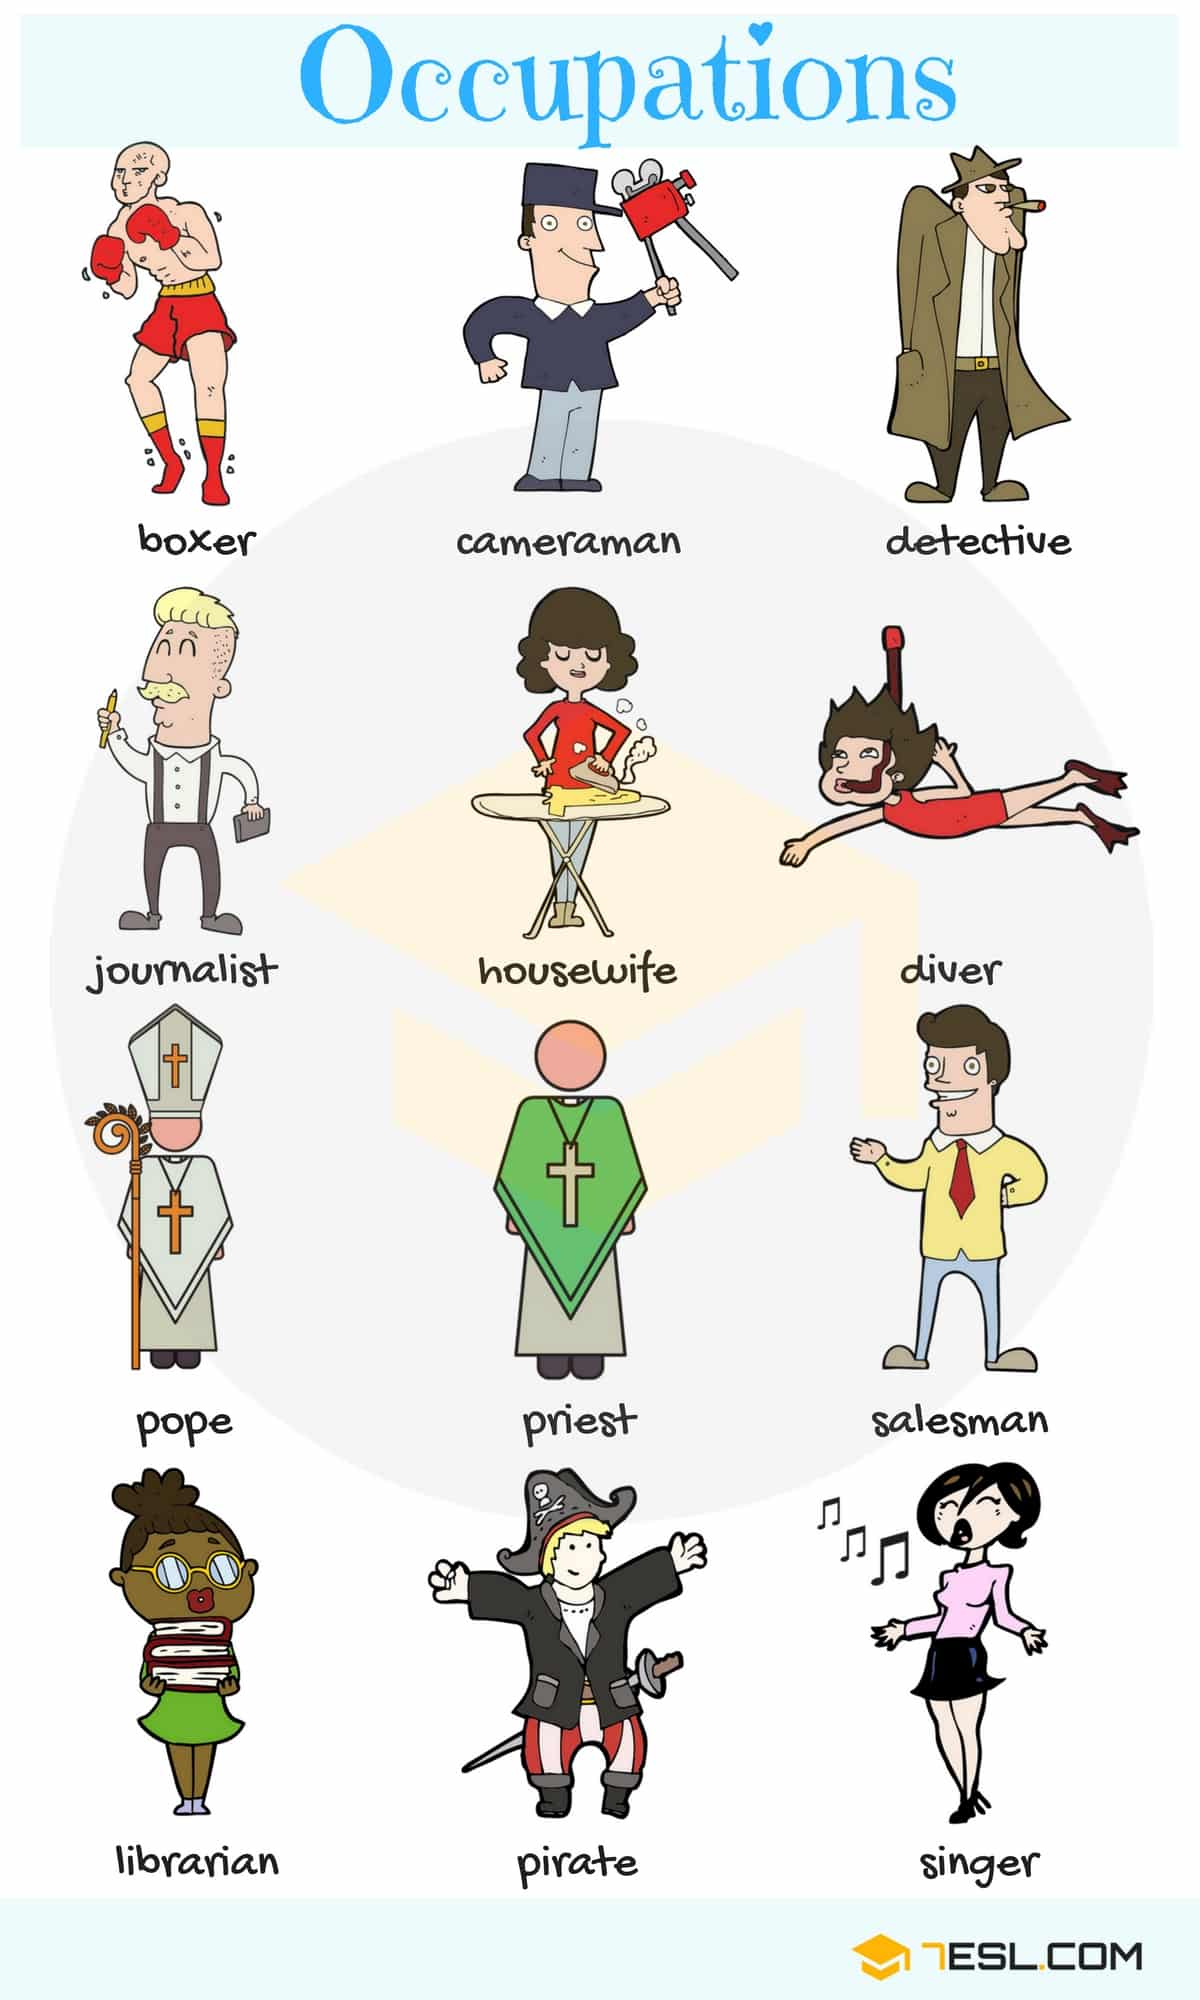 List of Jobs and Occupations | Types of Jobs with Pictures